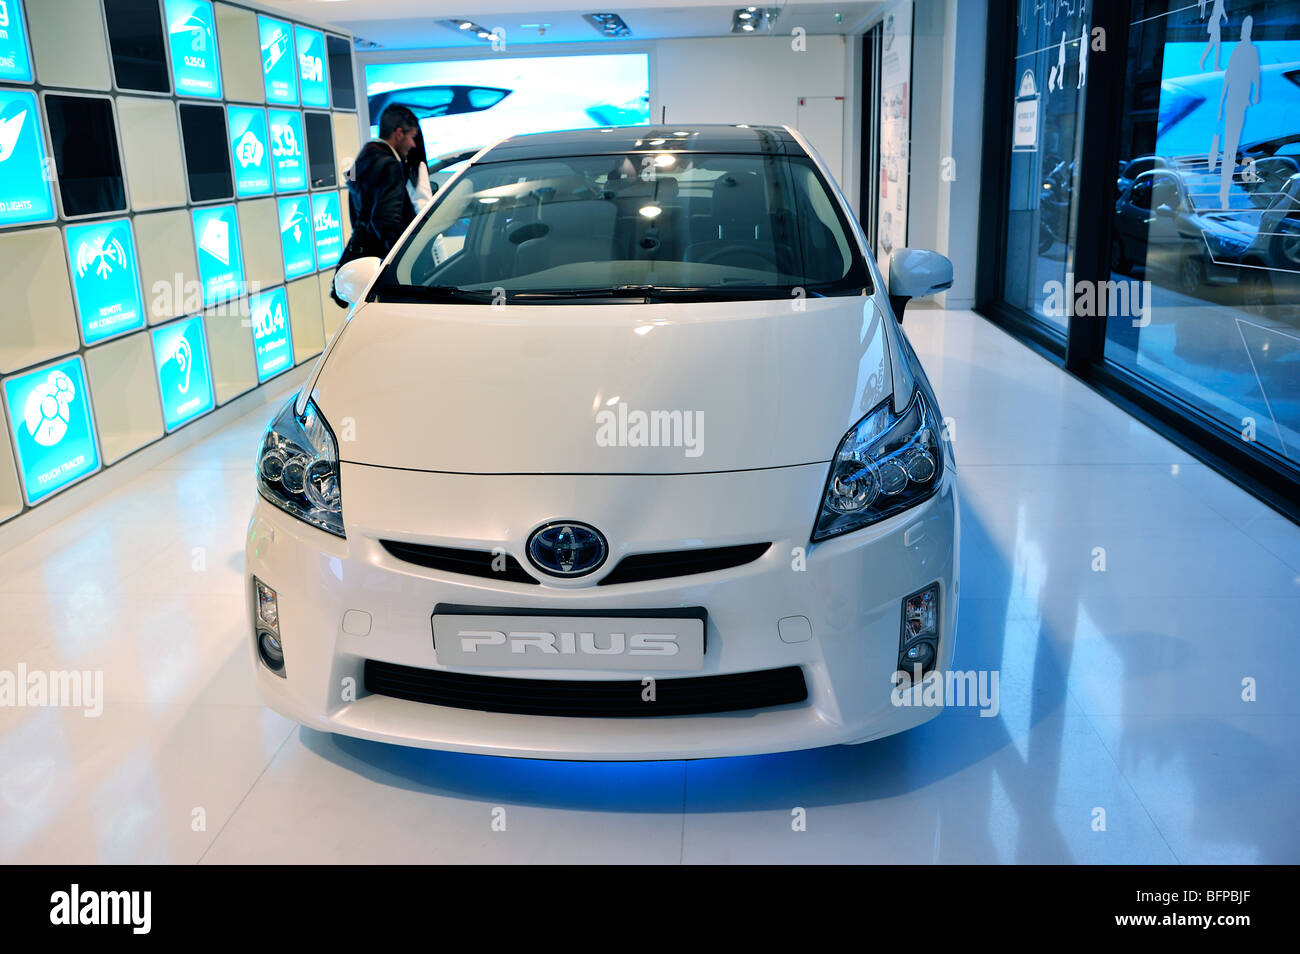 Paris, France, Couple Shopping in New Car Showroom, Toyota Prius Car, gas-electric Hybid Motor - Stock Image